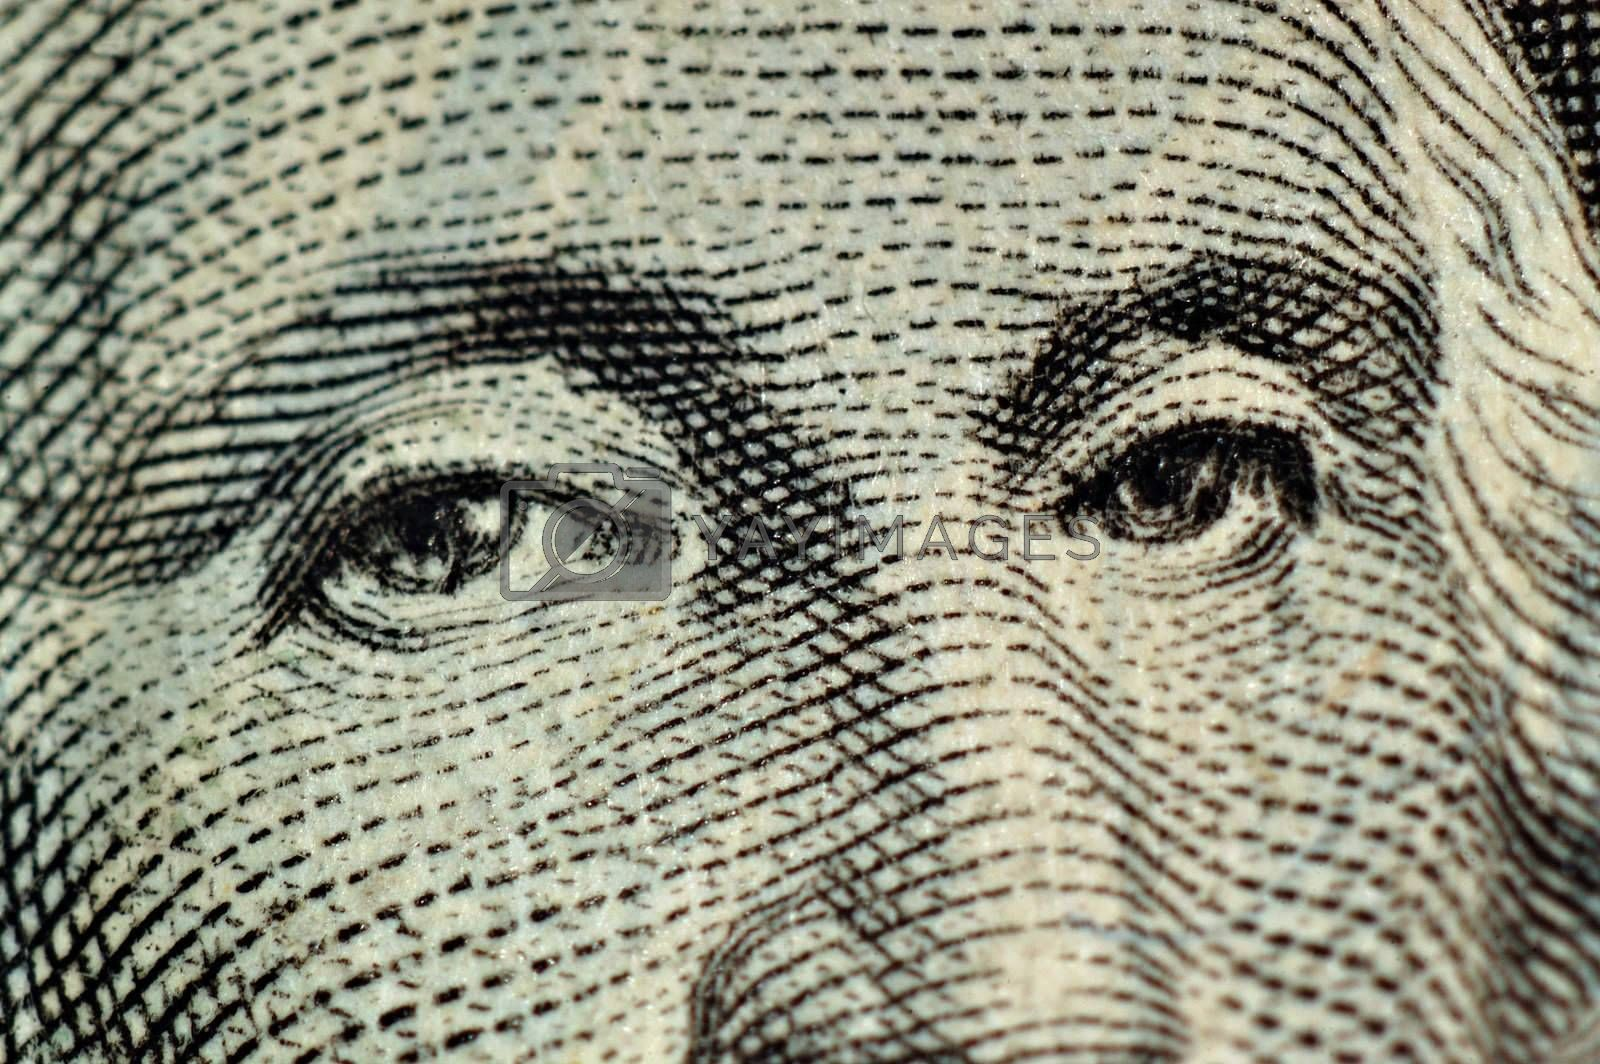 Macro of dollar bill featuring the eyes of George Washington